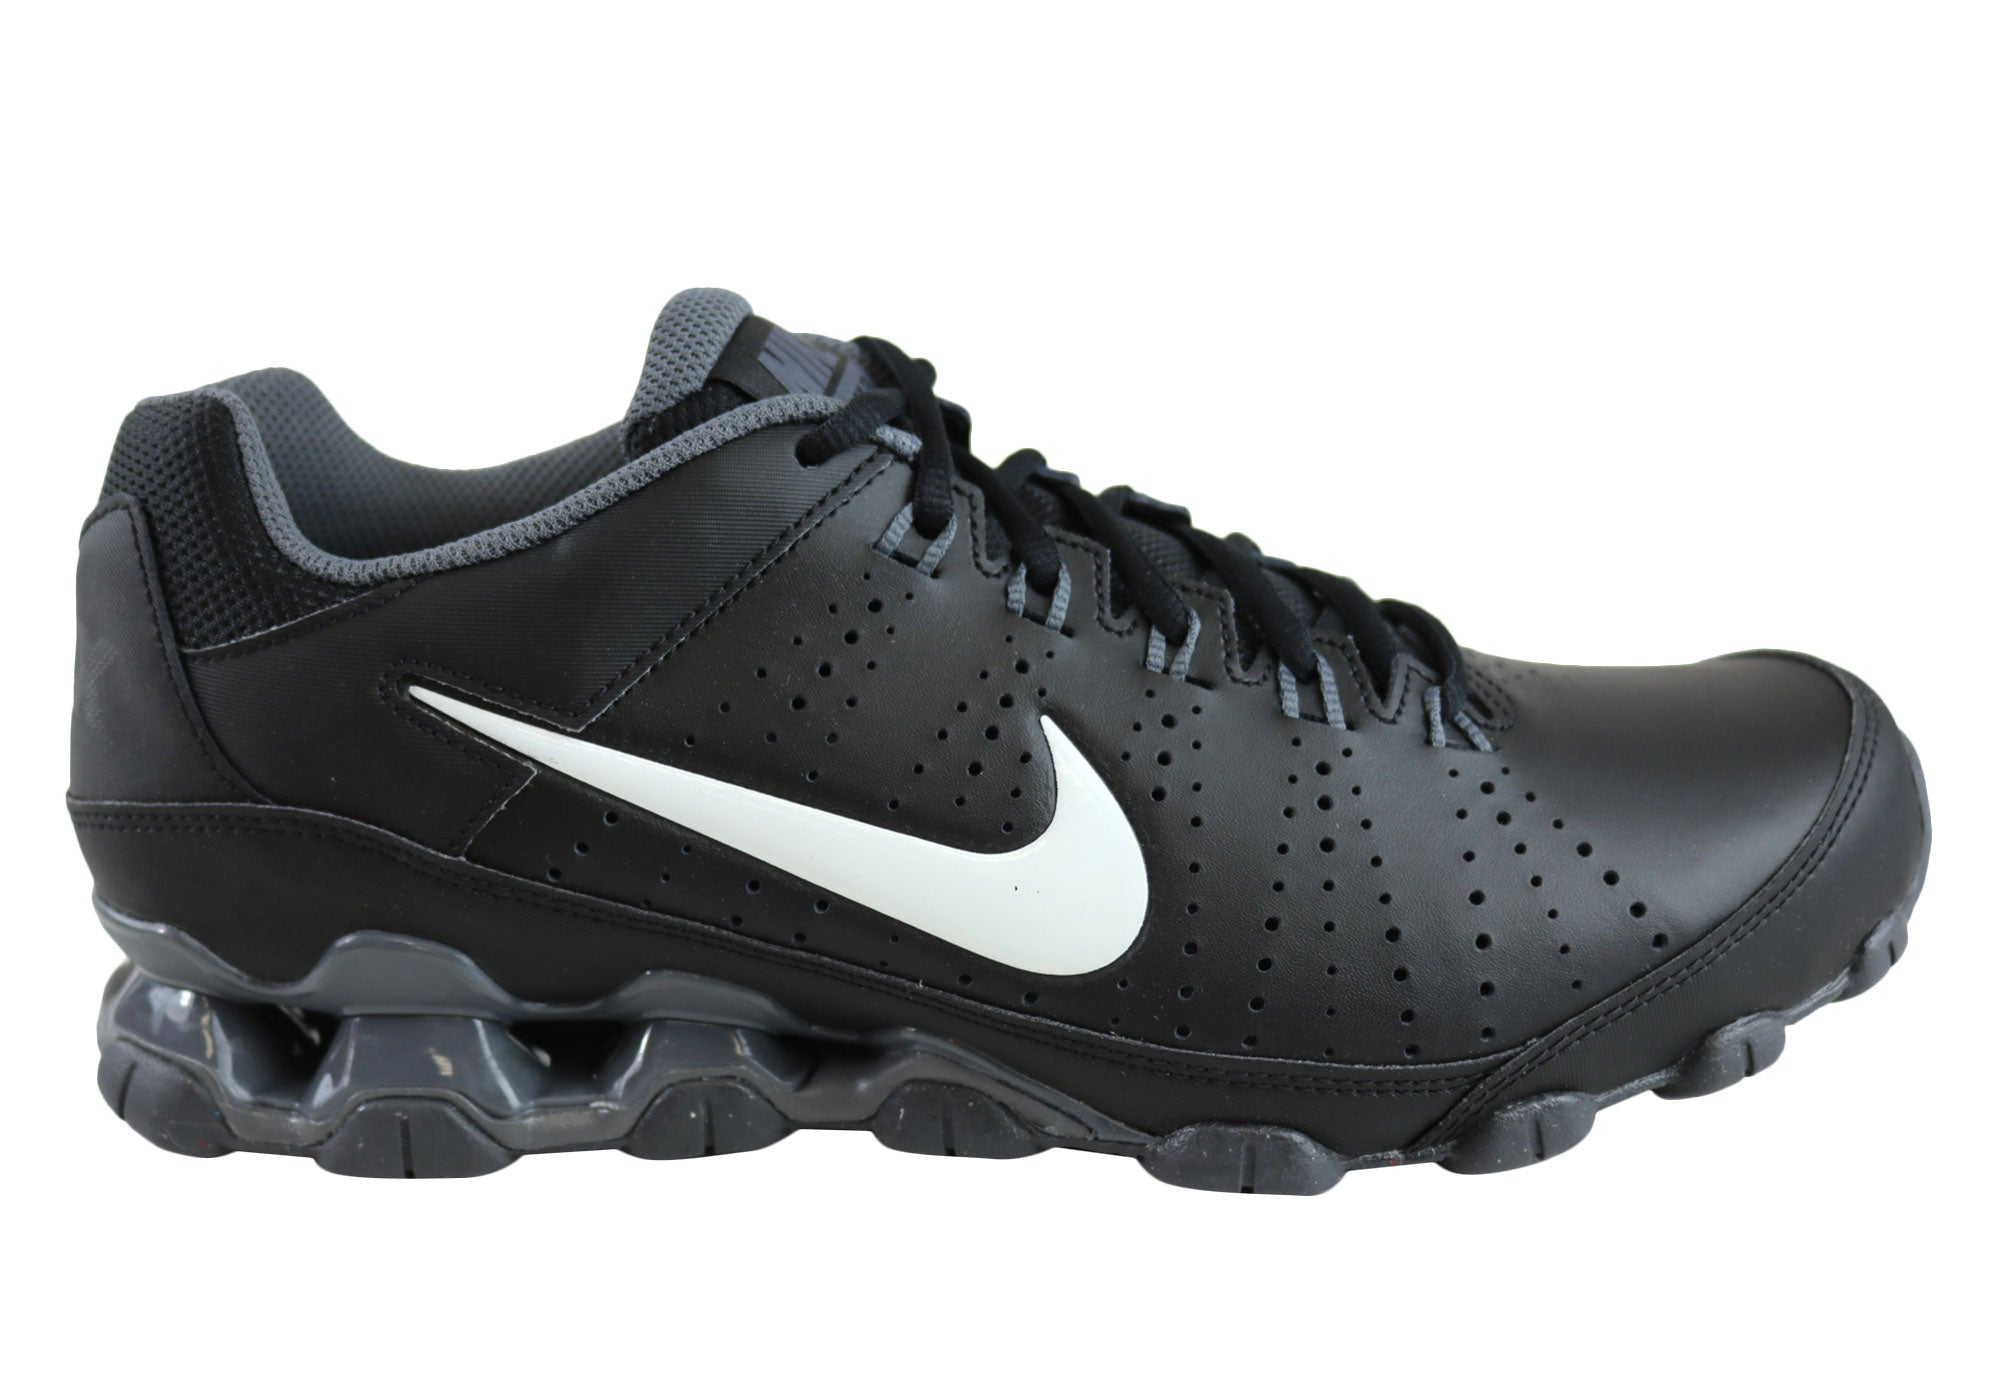 d0bccc096 Nike Reax 9 Tr Mens Crossing Trainers Sport Shoes | Brand House Direct